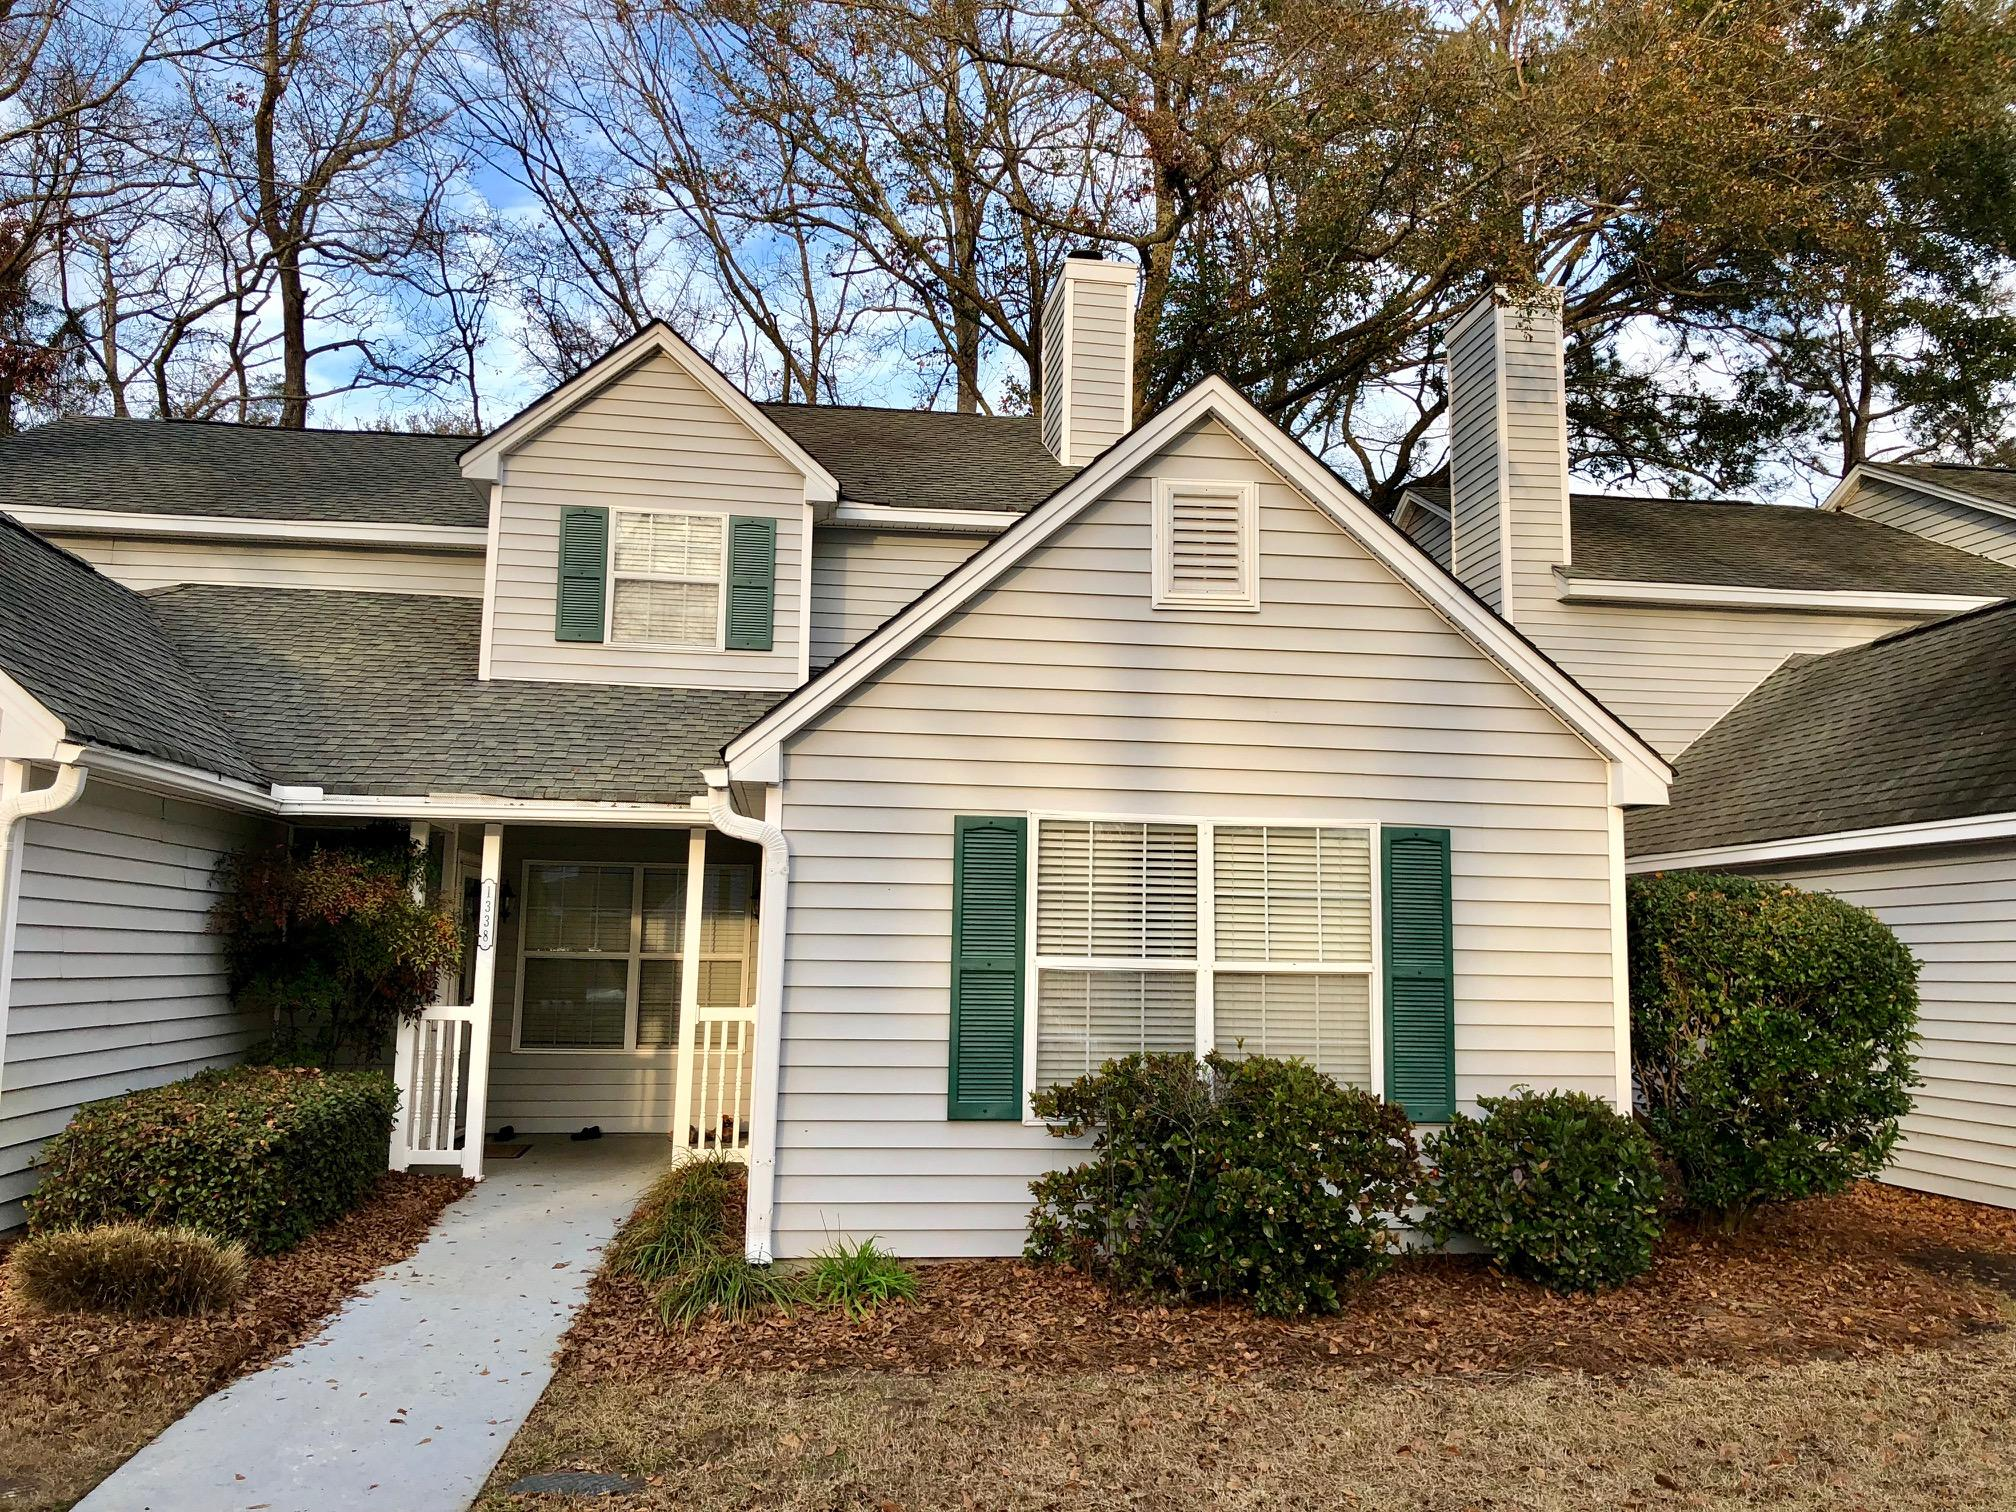 Home for sale 1338 Cassidy Court, Remington Forest, Mt. Pleasant, SC